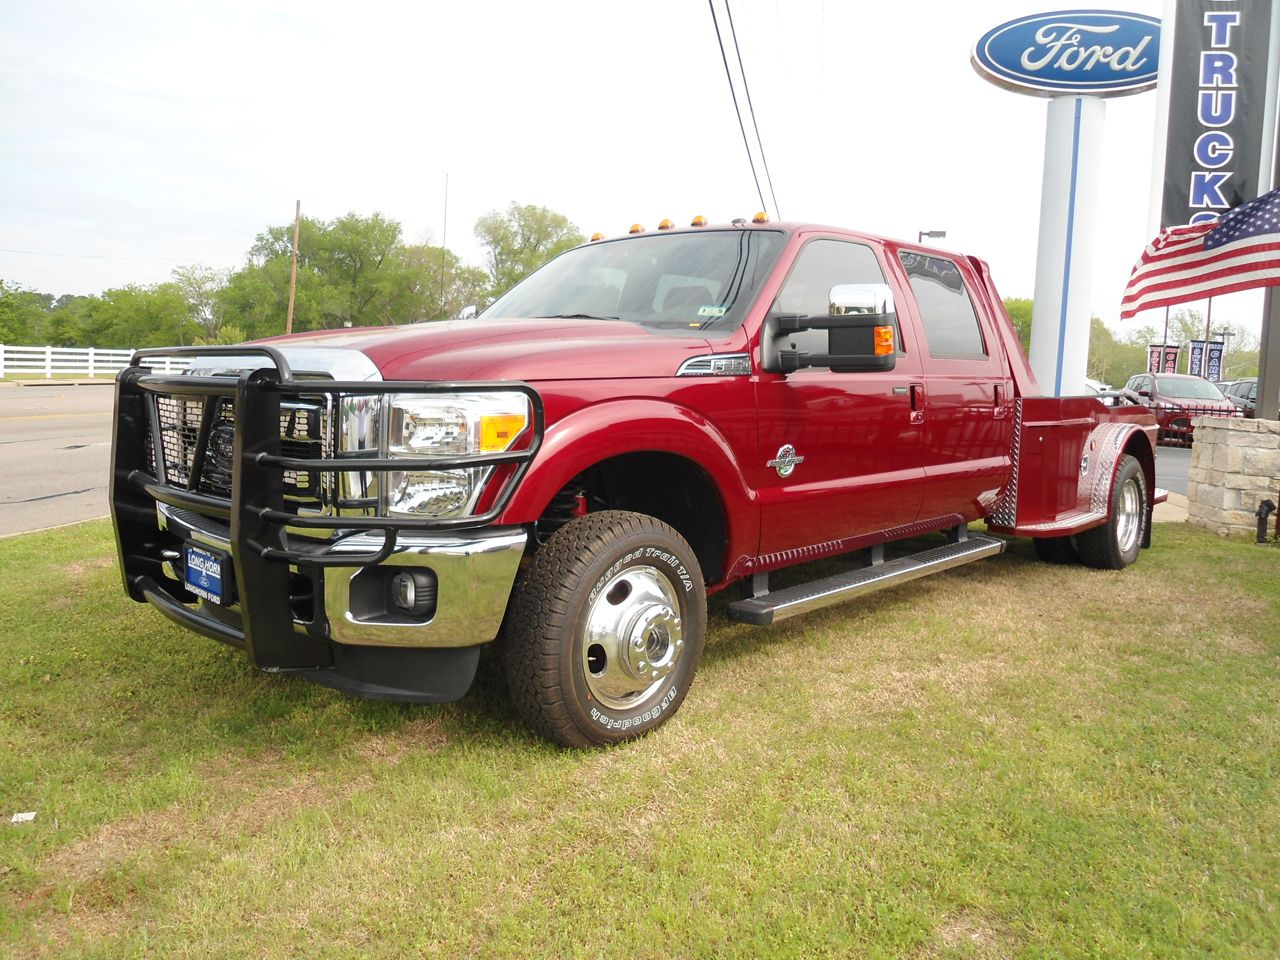 2014 ford f350 drw lariat 4x4 with a custom herrin hauler bed this hauler truck